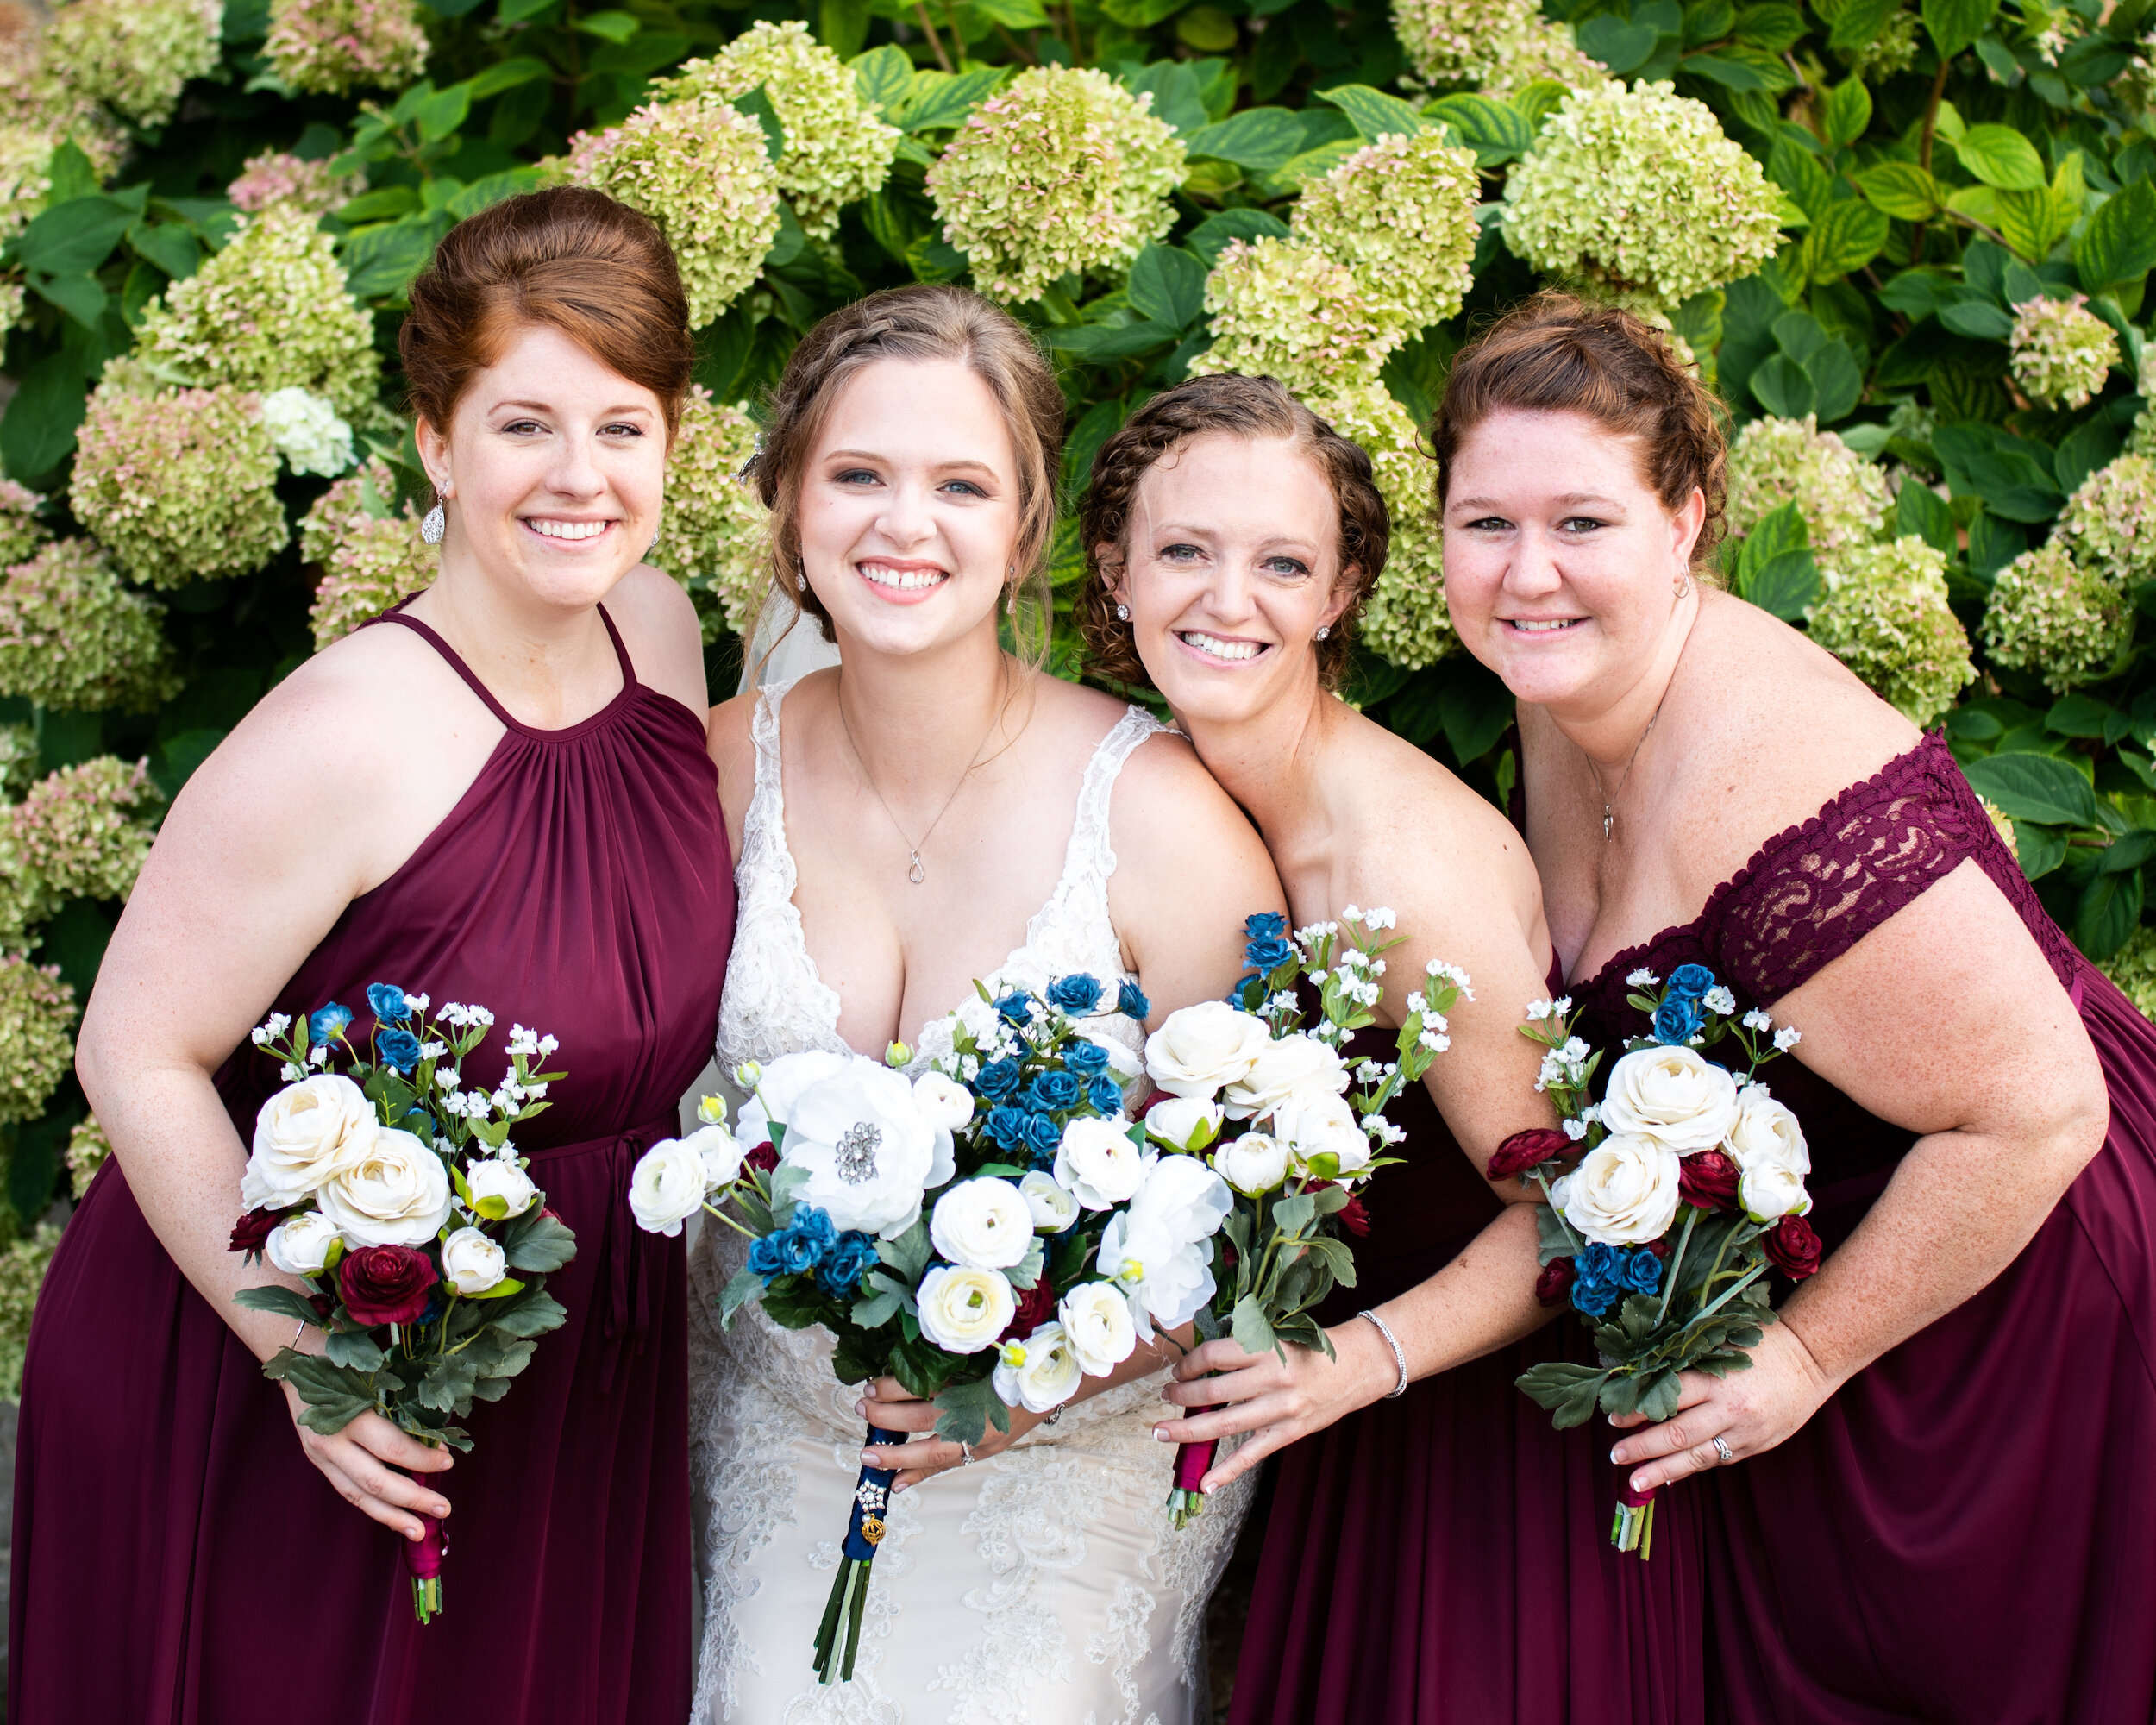 Wedding photography muncie indiana